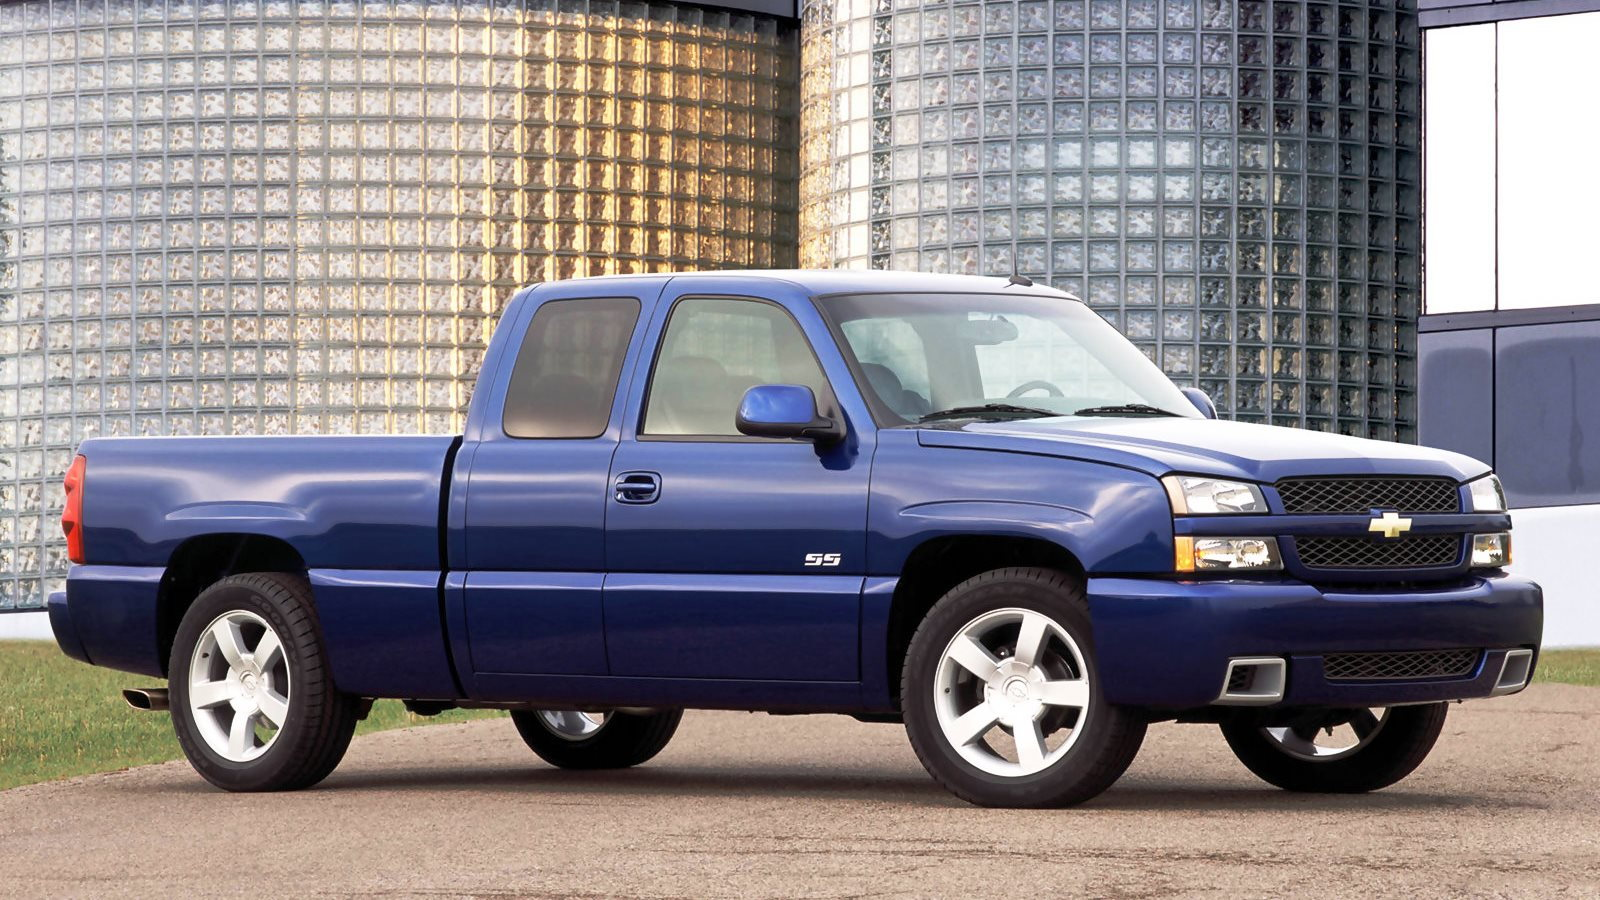 All Types single cab silverado ss : 7 Facts about the Silverado SS/Vortec H.O./VortecMax - Ls1tech